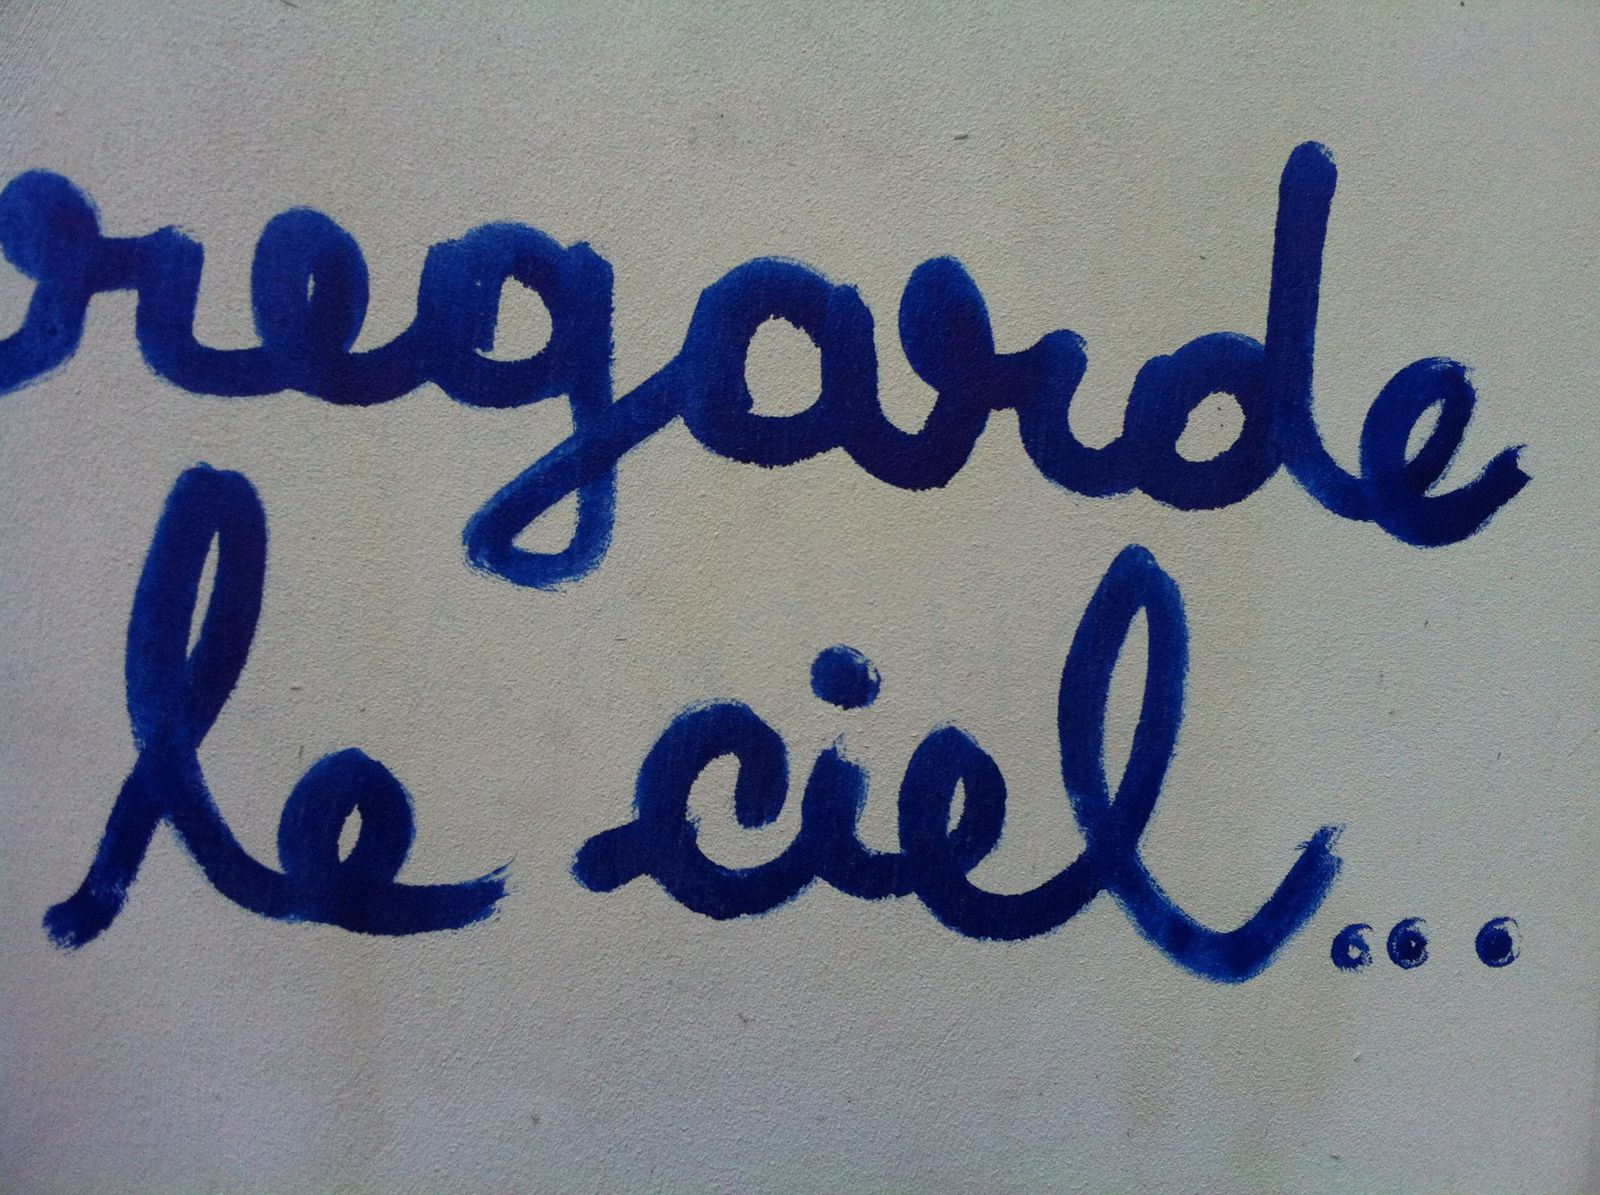 Tag, Rue du temple, Paris